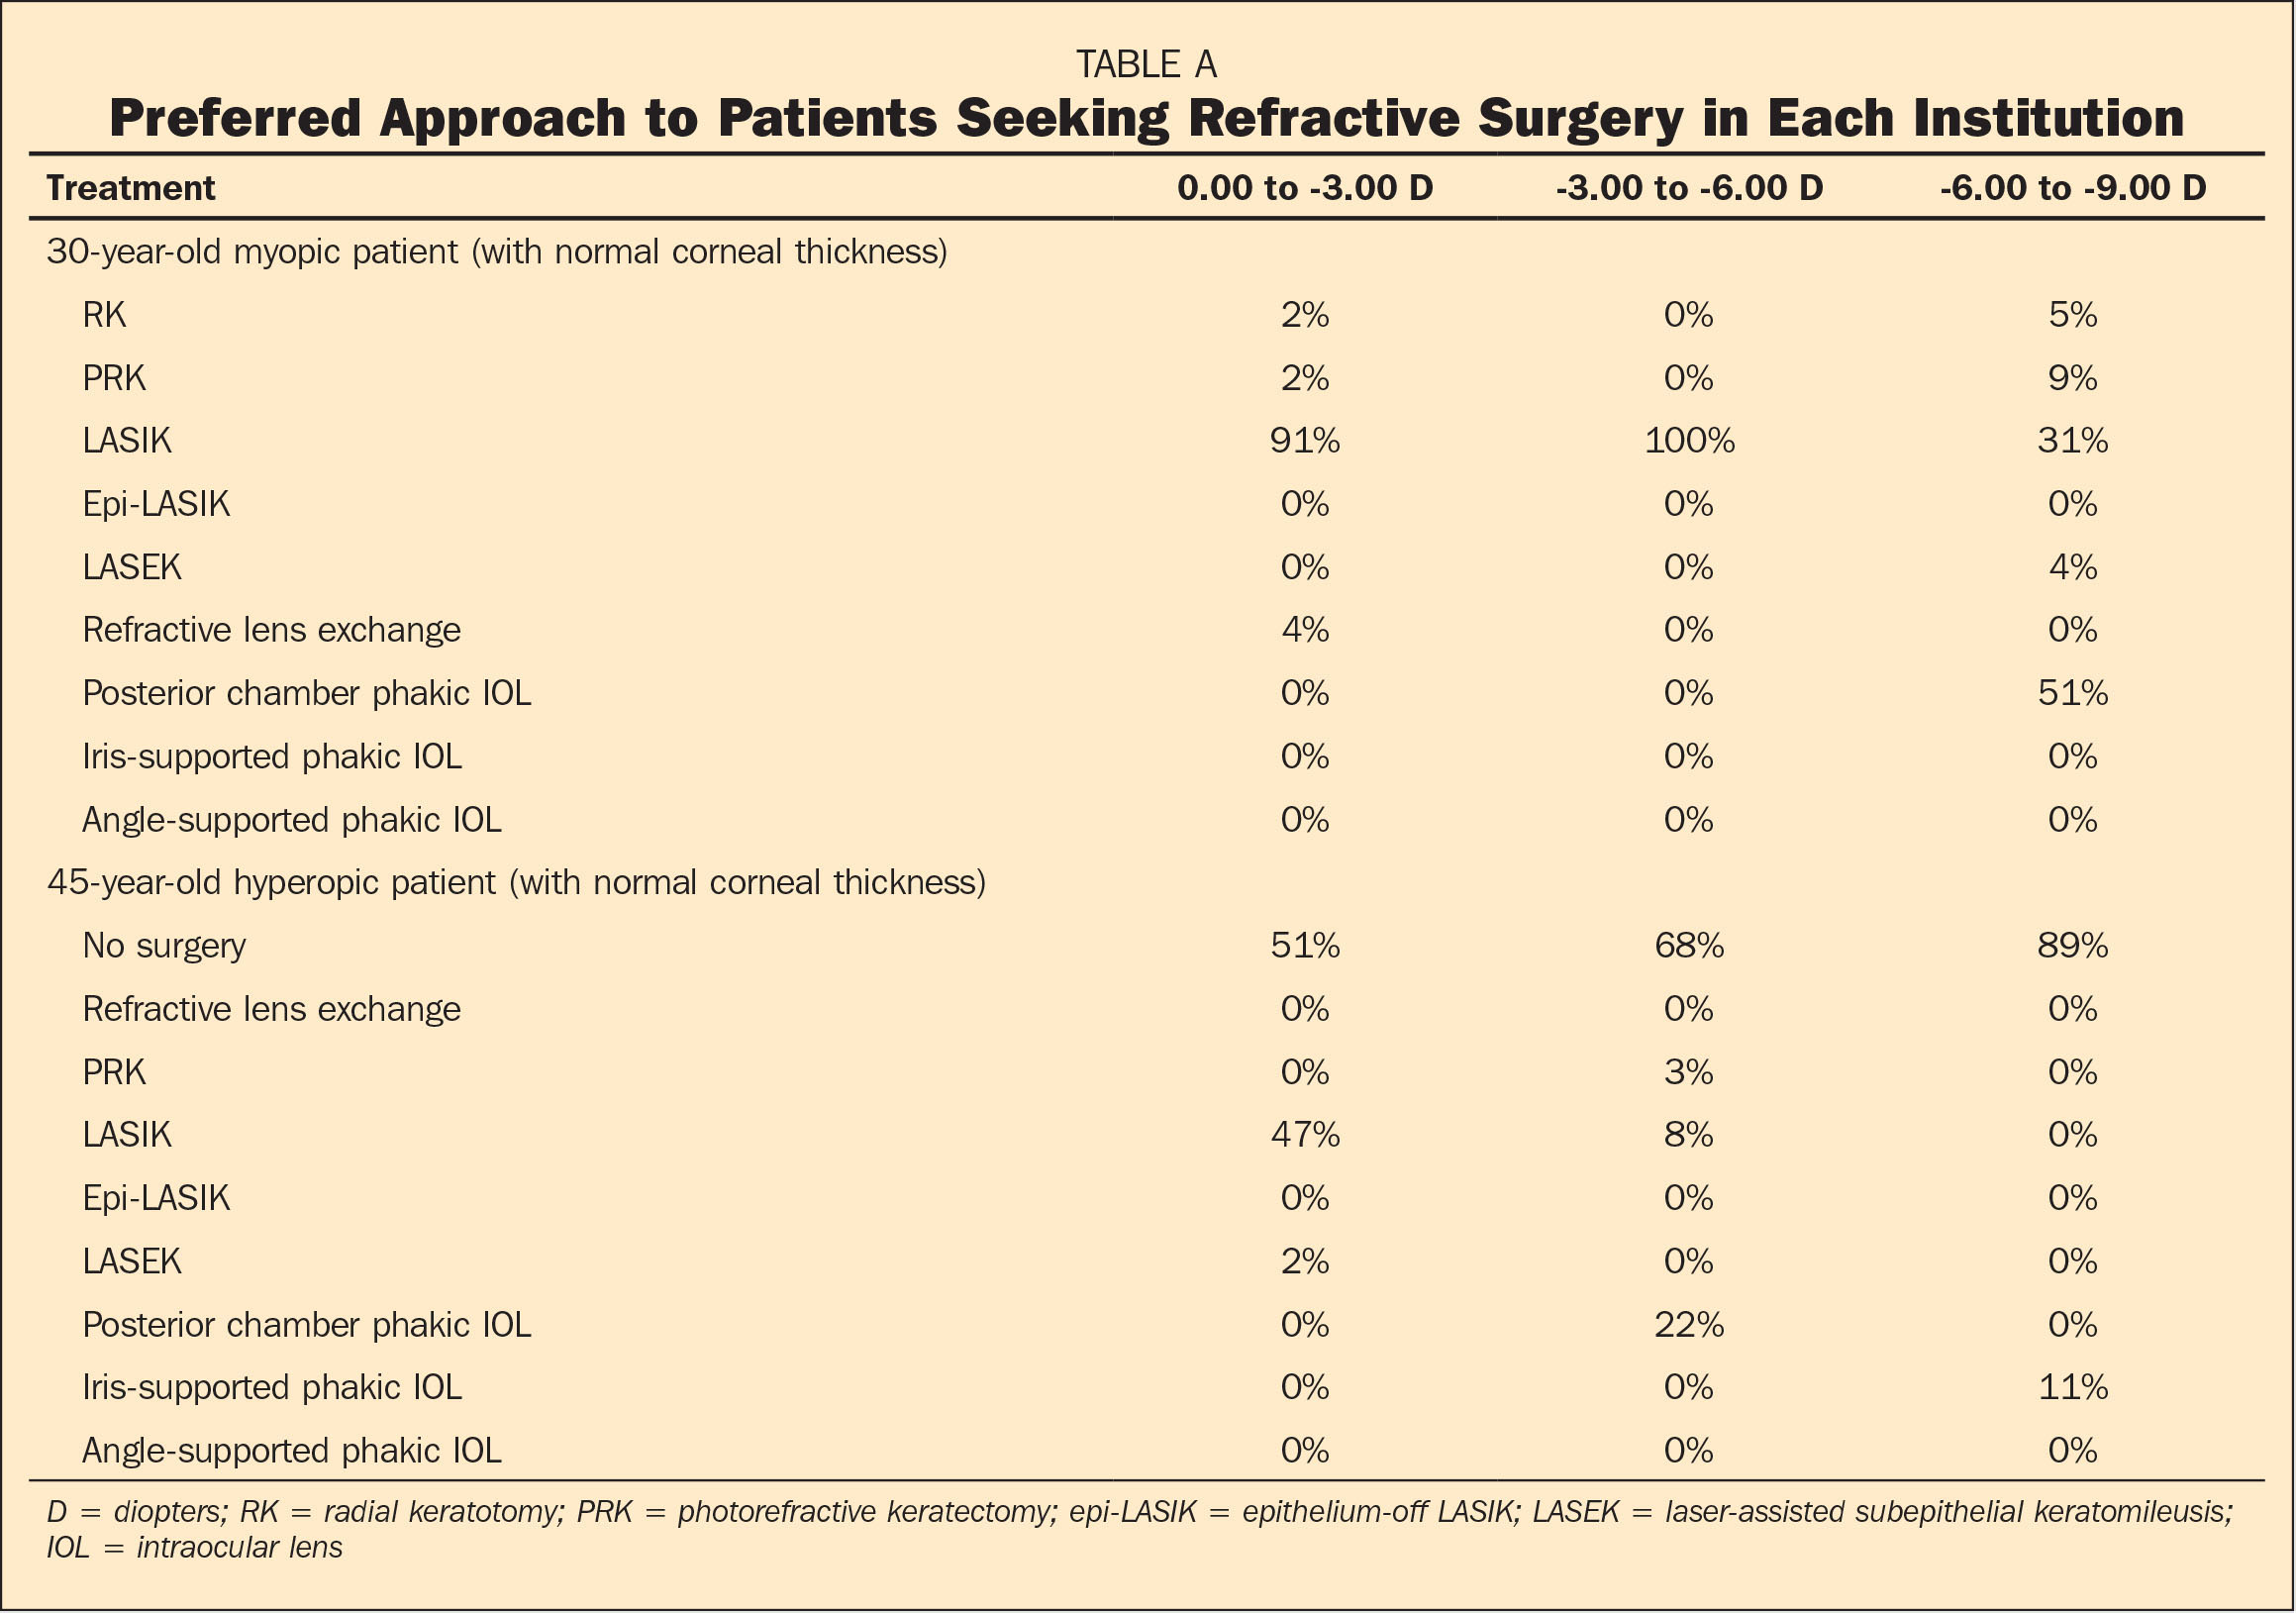 Preferred Approach to Patients Seeking Refractive Surgery in Each Institution